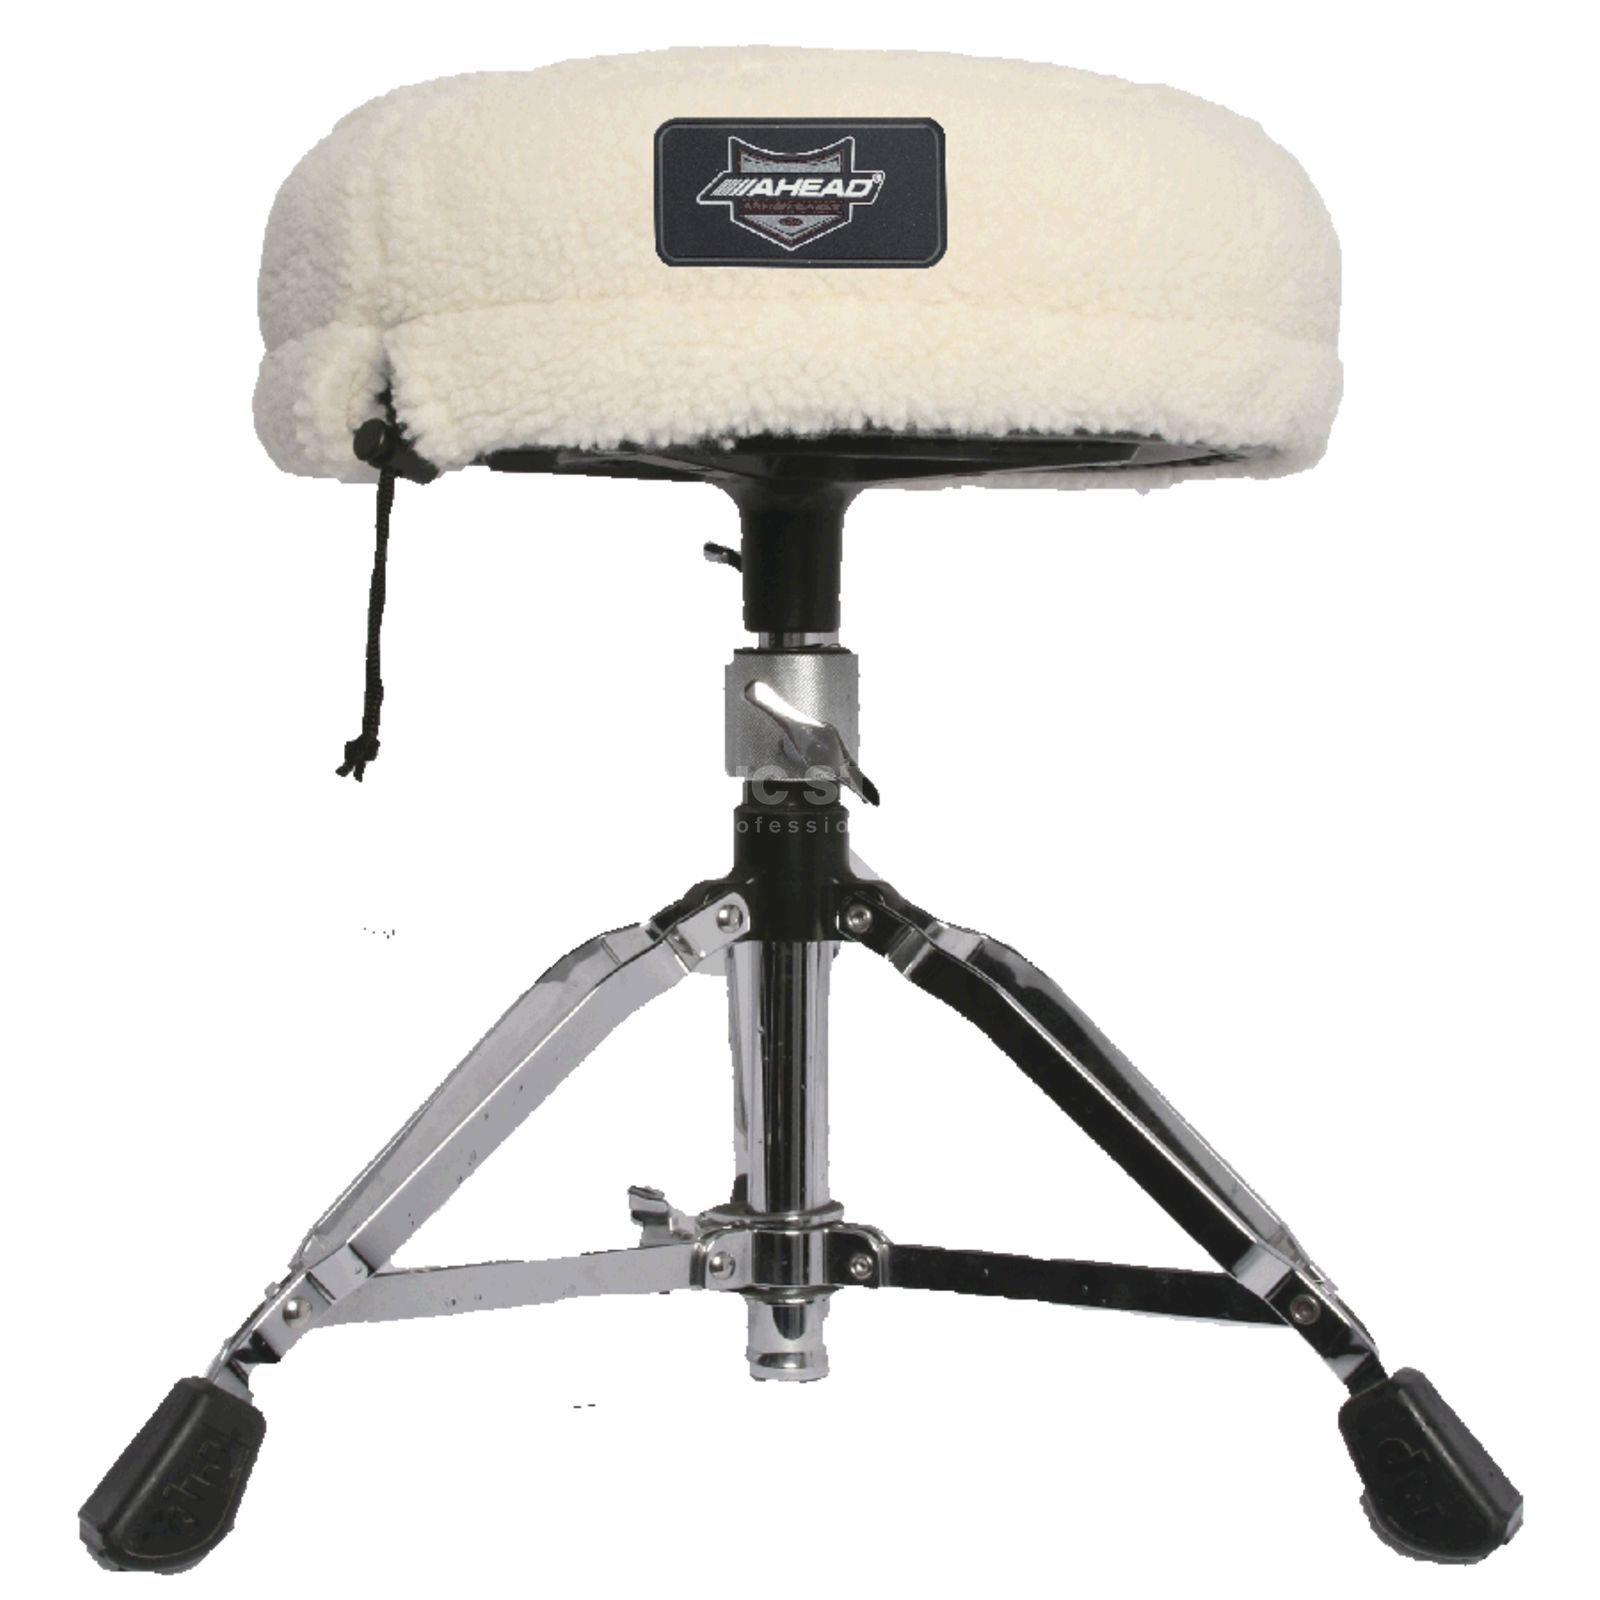 Ahead Armor Cases Cover for Drum Throne AA9024 Product Image